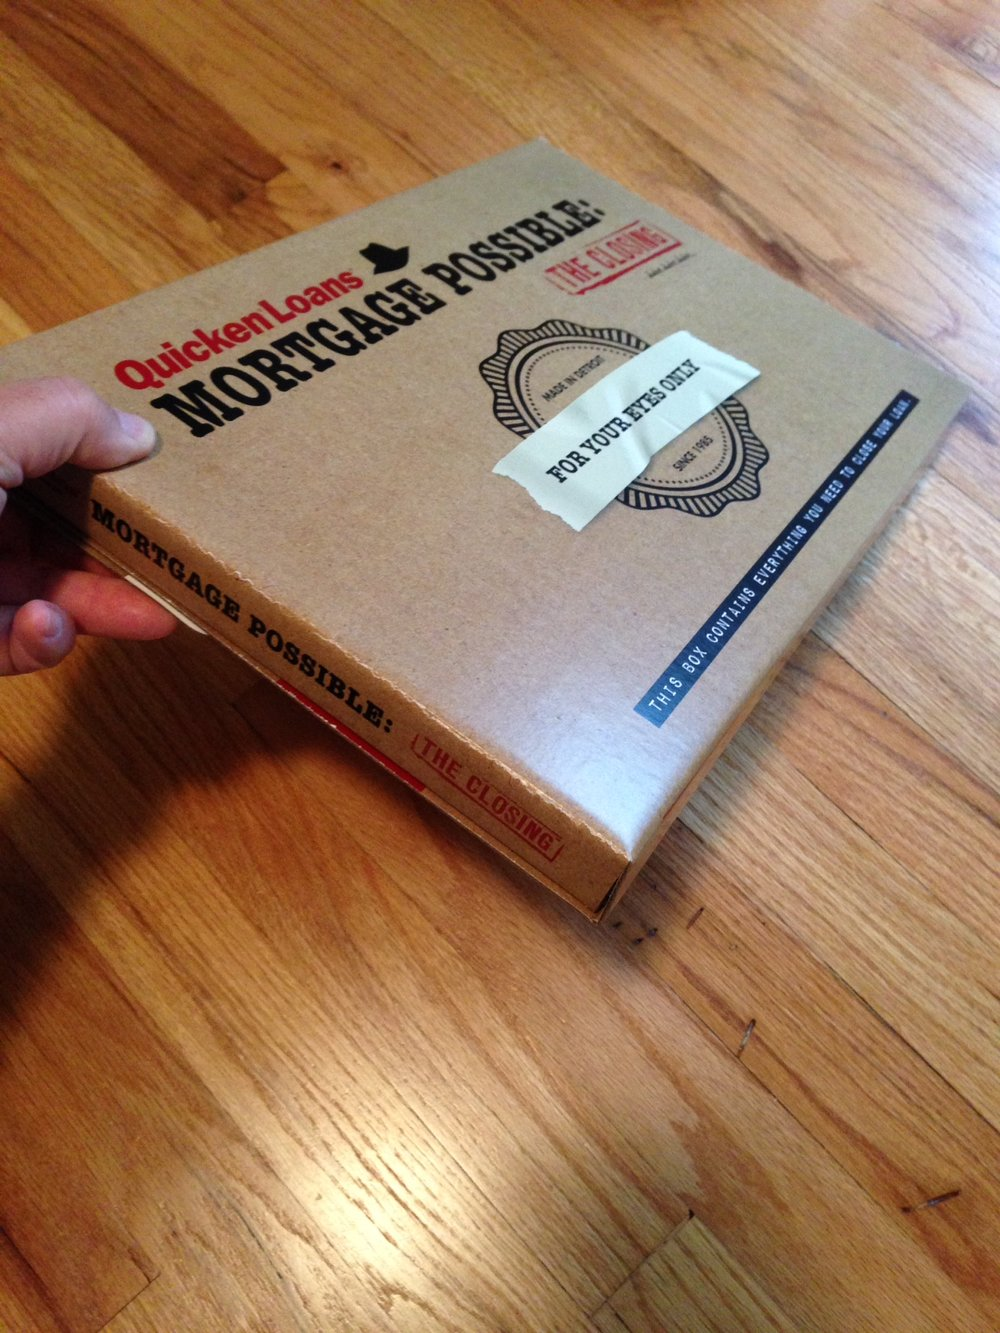 Quicken-Loans-Mortgage-Possible-Closing-Box-Packaging-Front-Hand.JPG